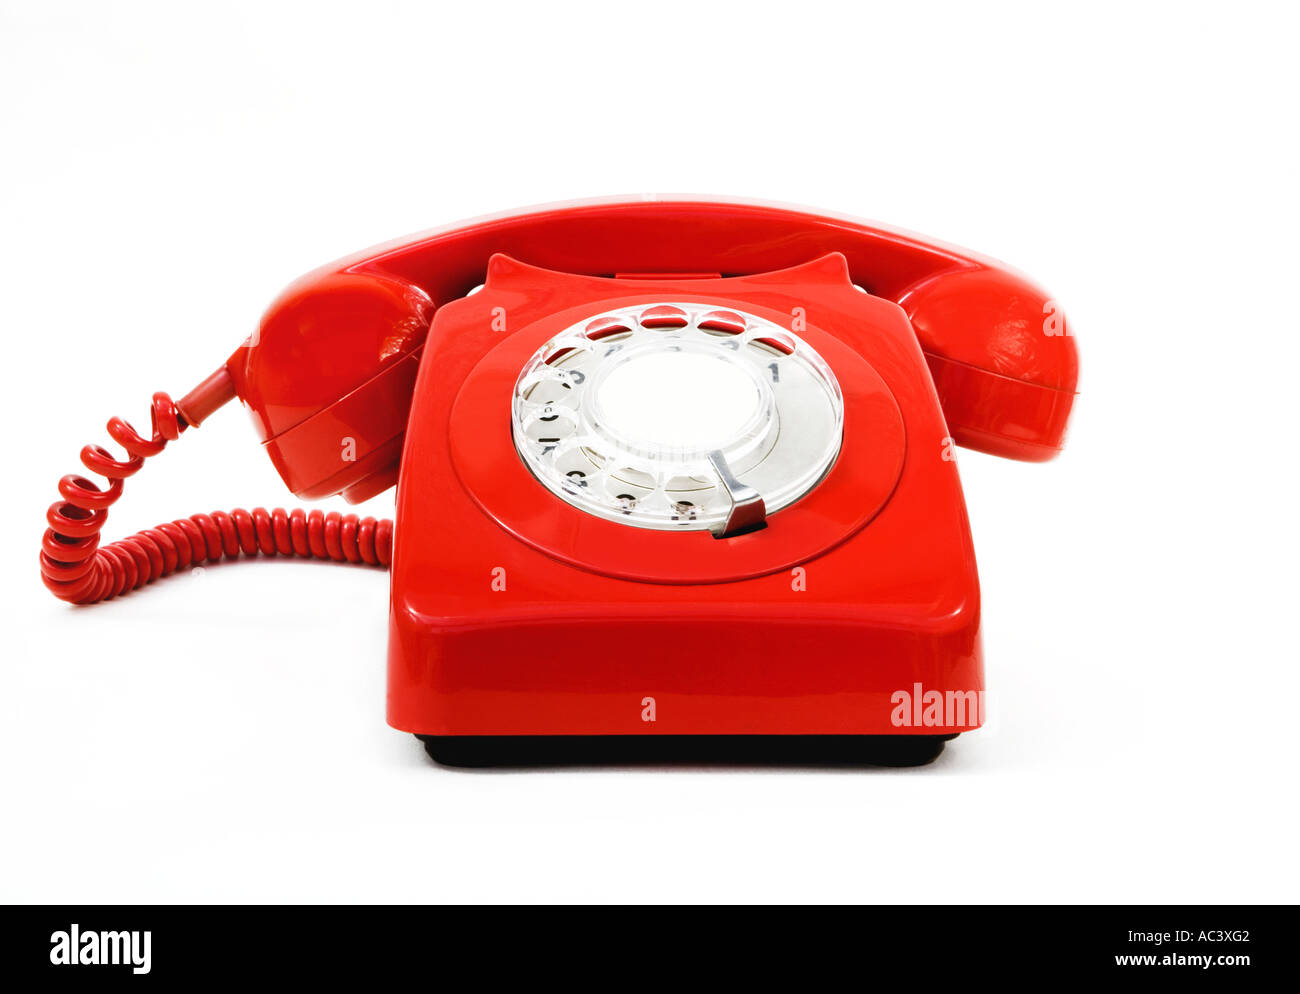 Cold Calling Telephone Stock Photos & Cold Calling Telephone